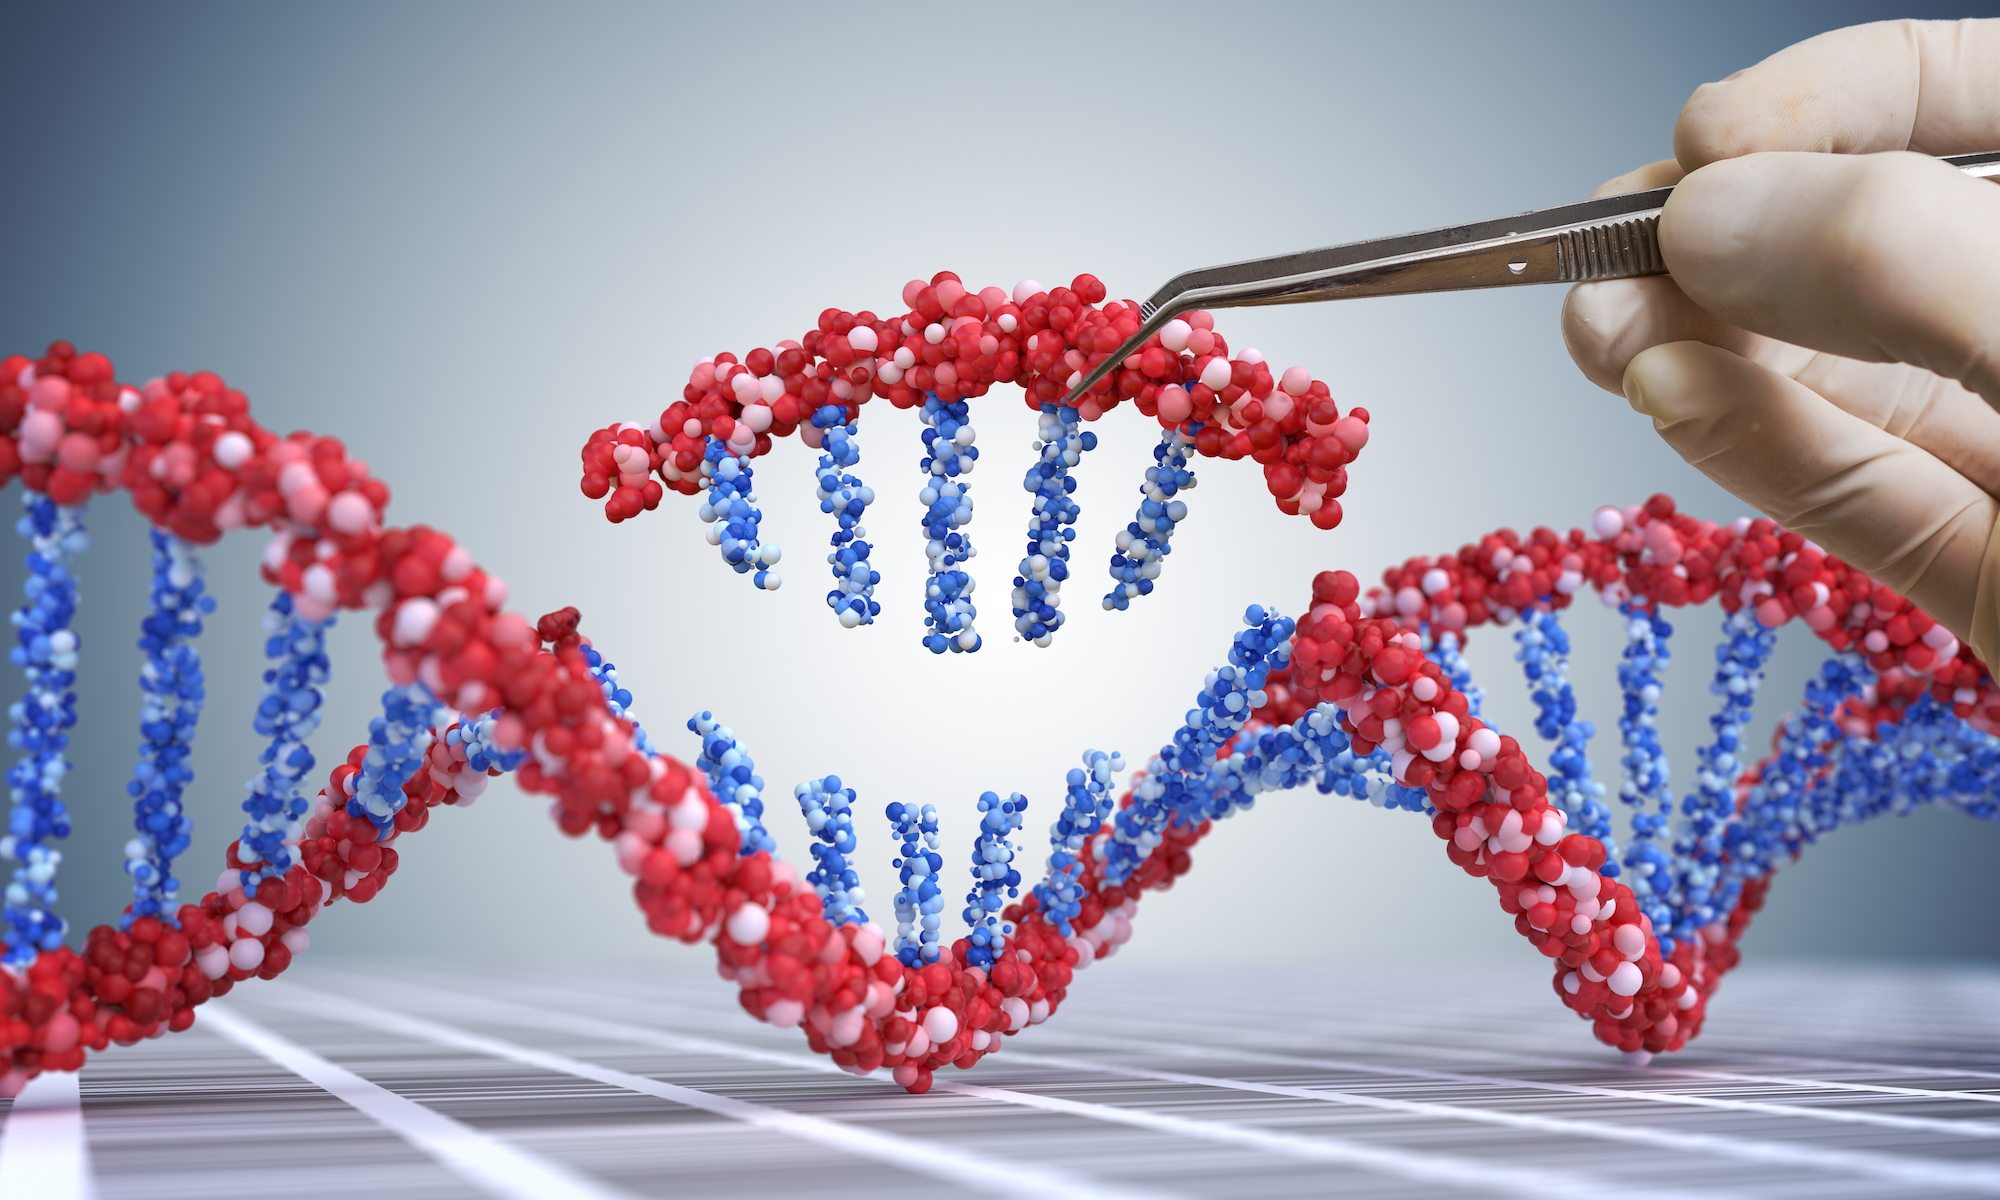 Illustration of a person using tweezers to modify a DNA string